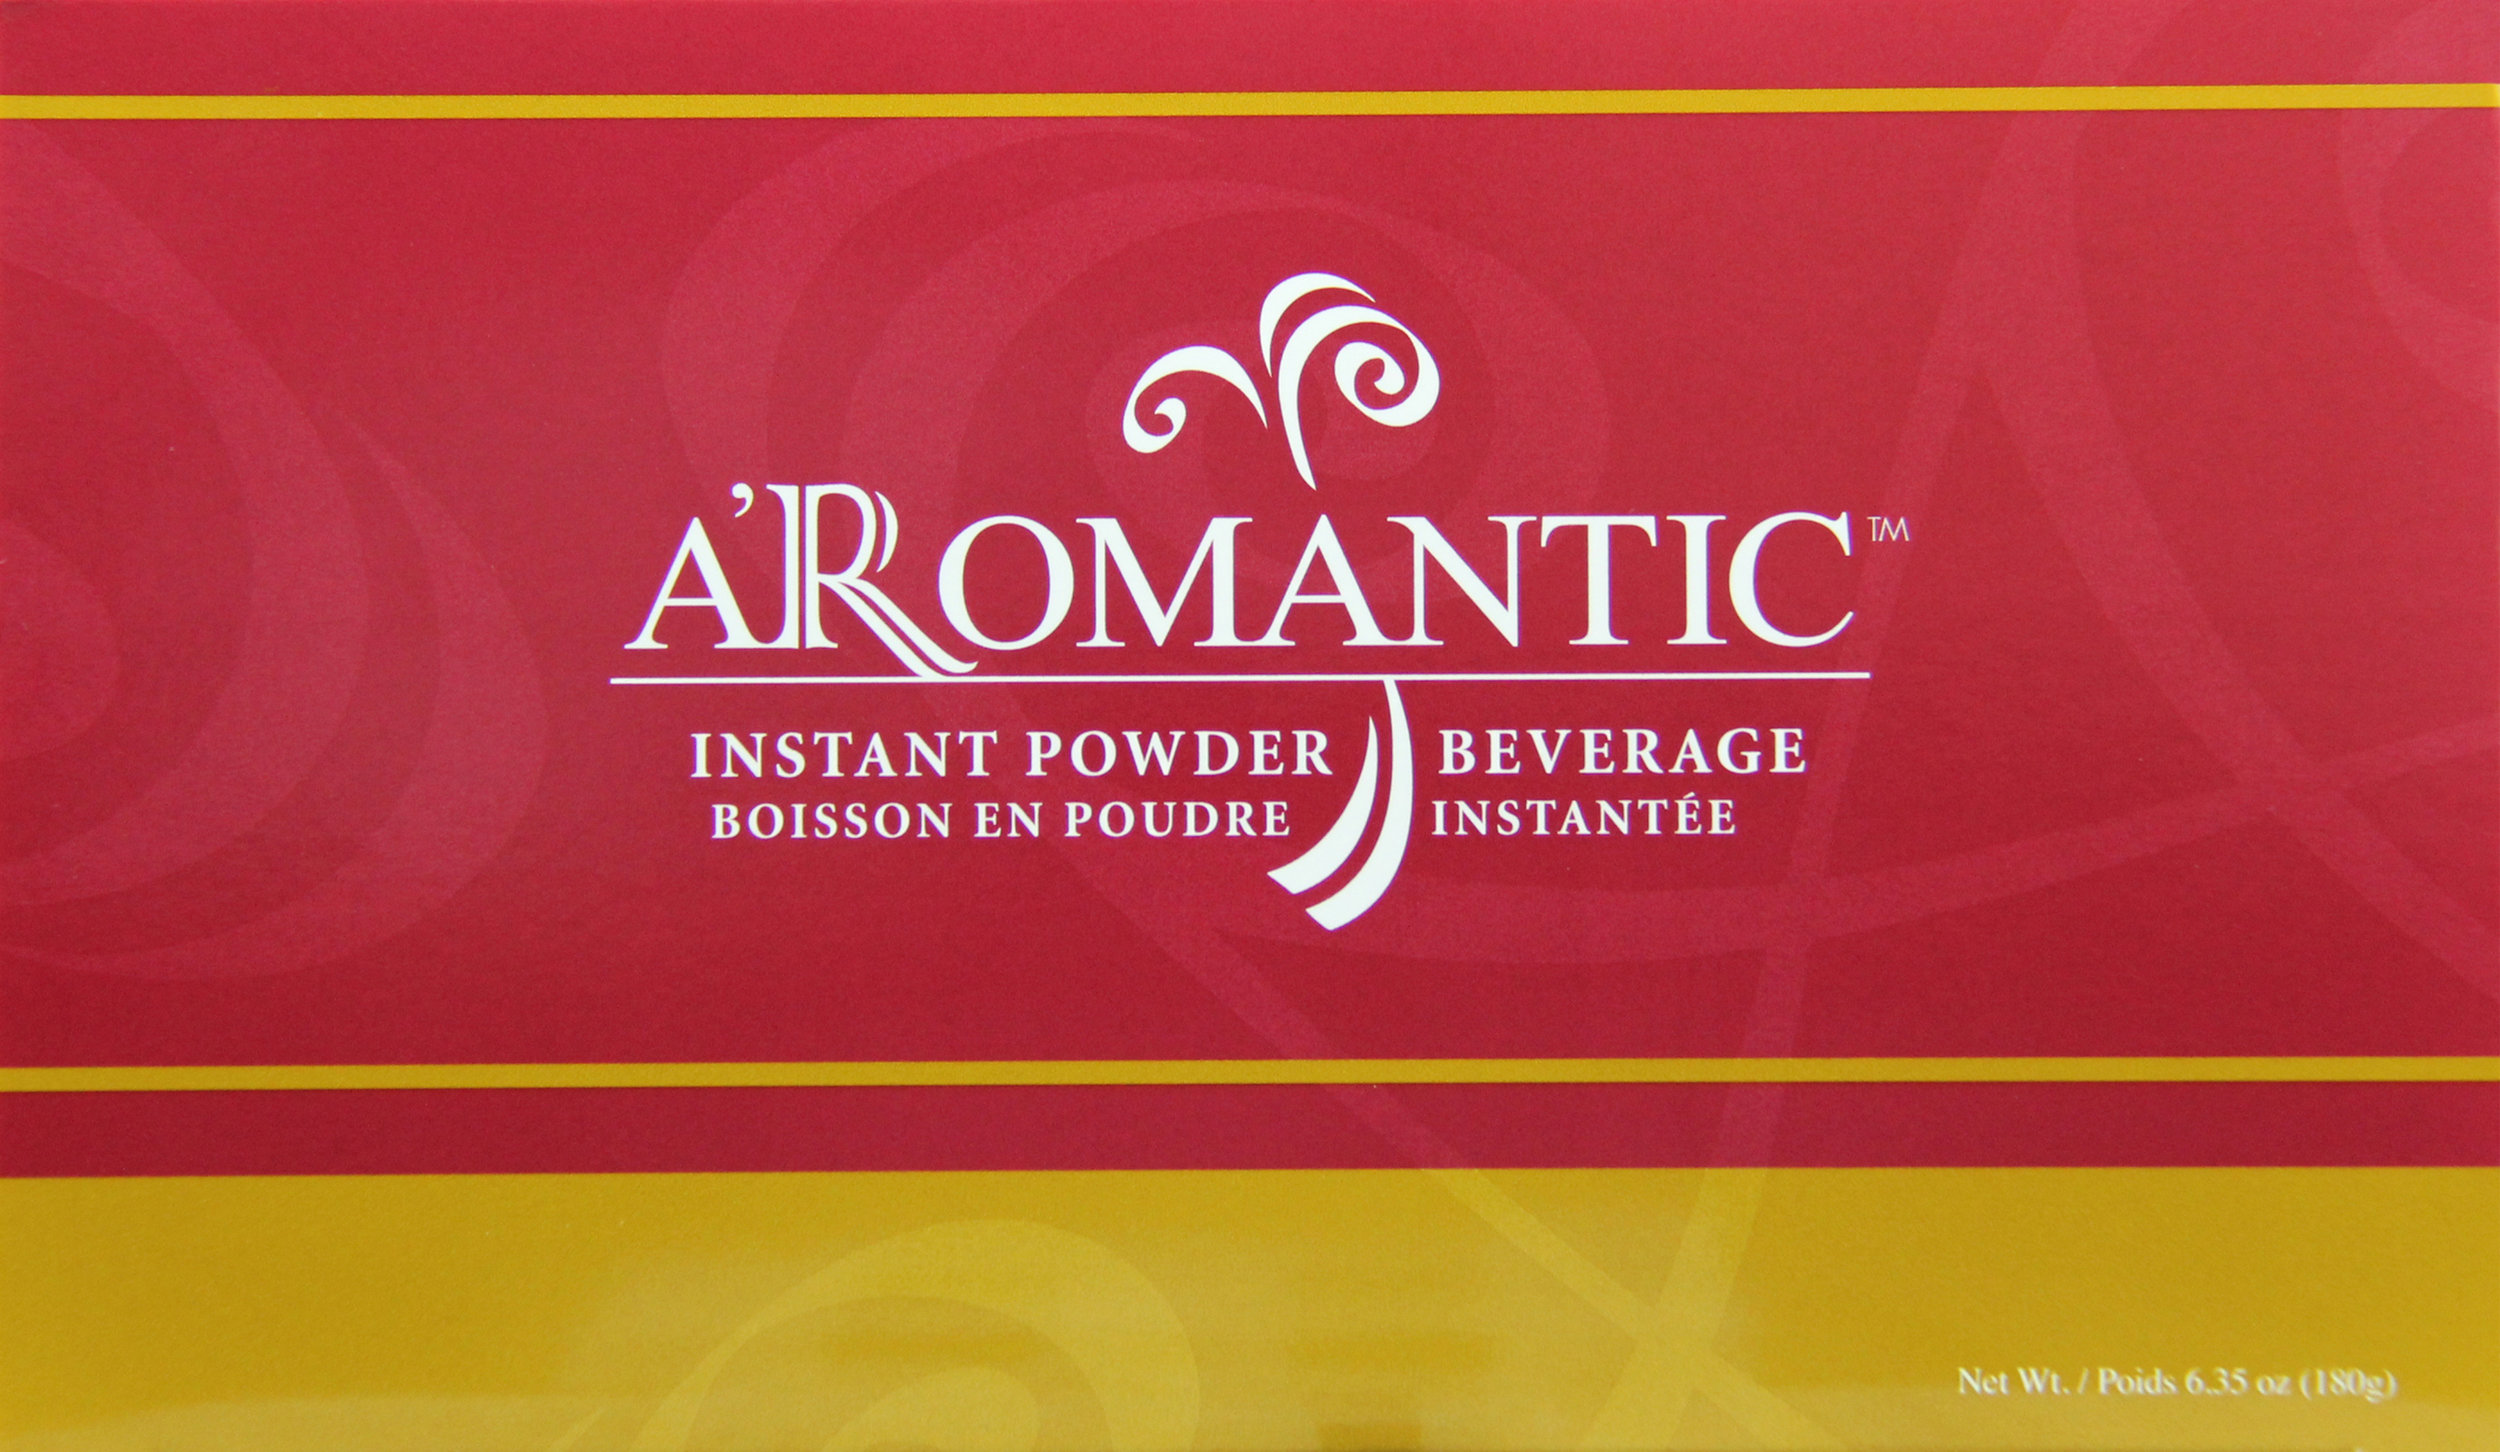 a'romantic - A premium barley tea (coffee alternative) with no stimulants. Low in calories, no added sugars. Delight your senses with the delicious aroma of roasted barley.Featured Ingredients: Barley, Bee Pollen & Pearl